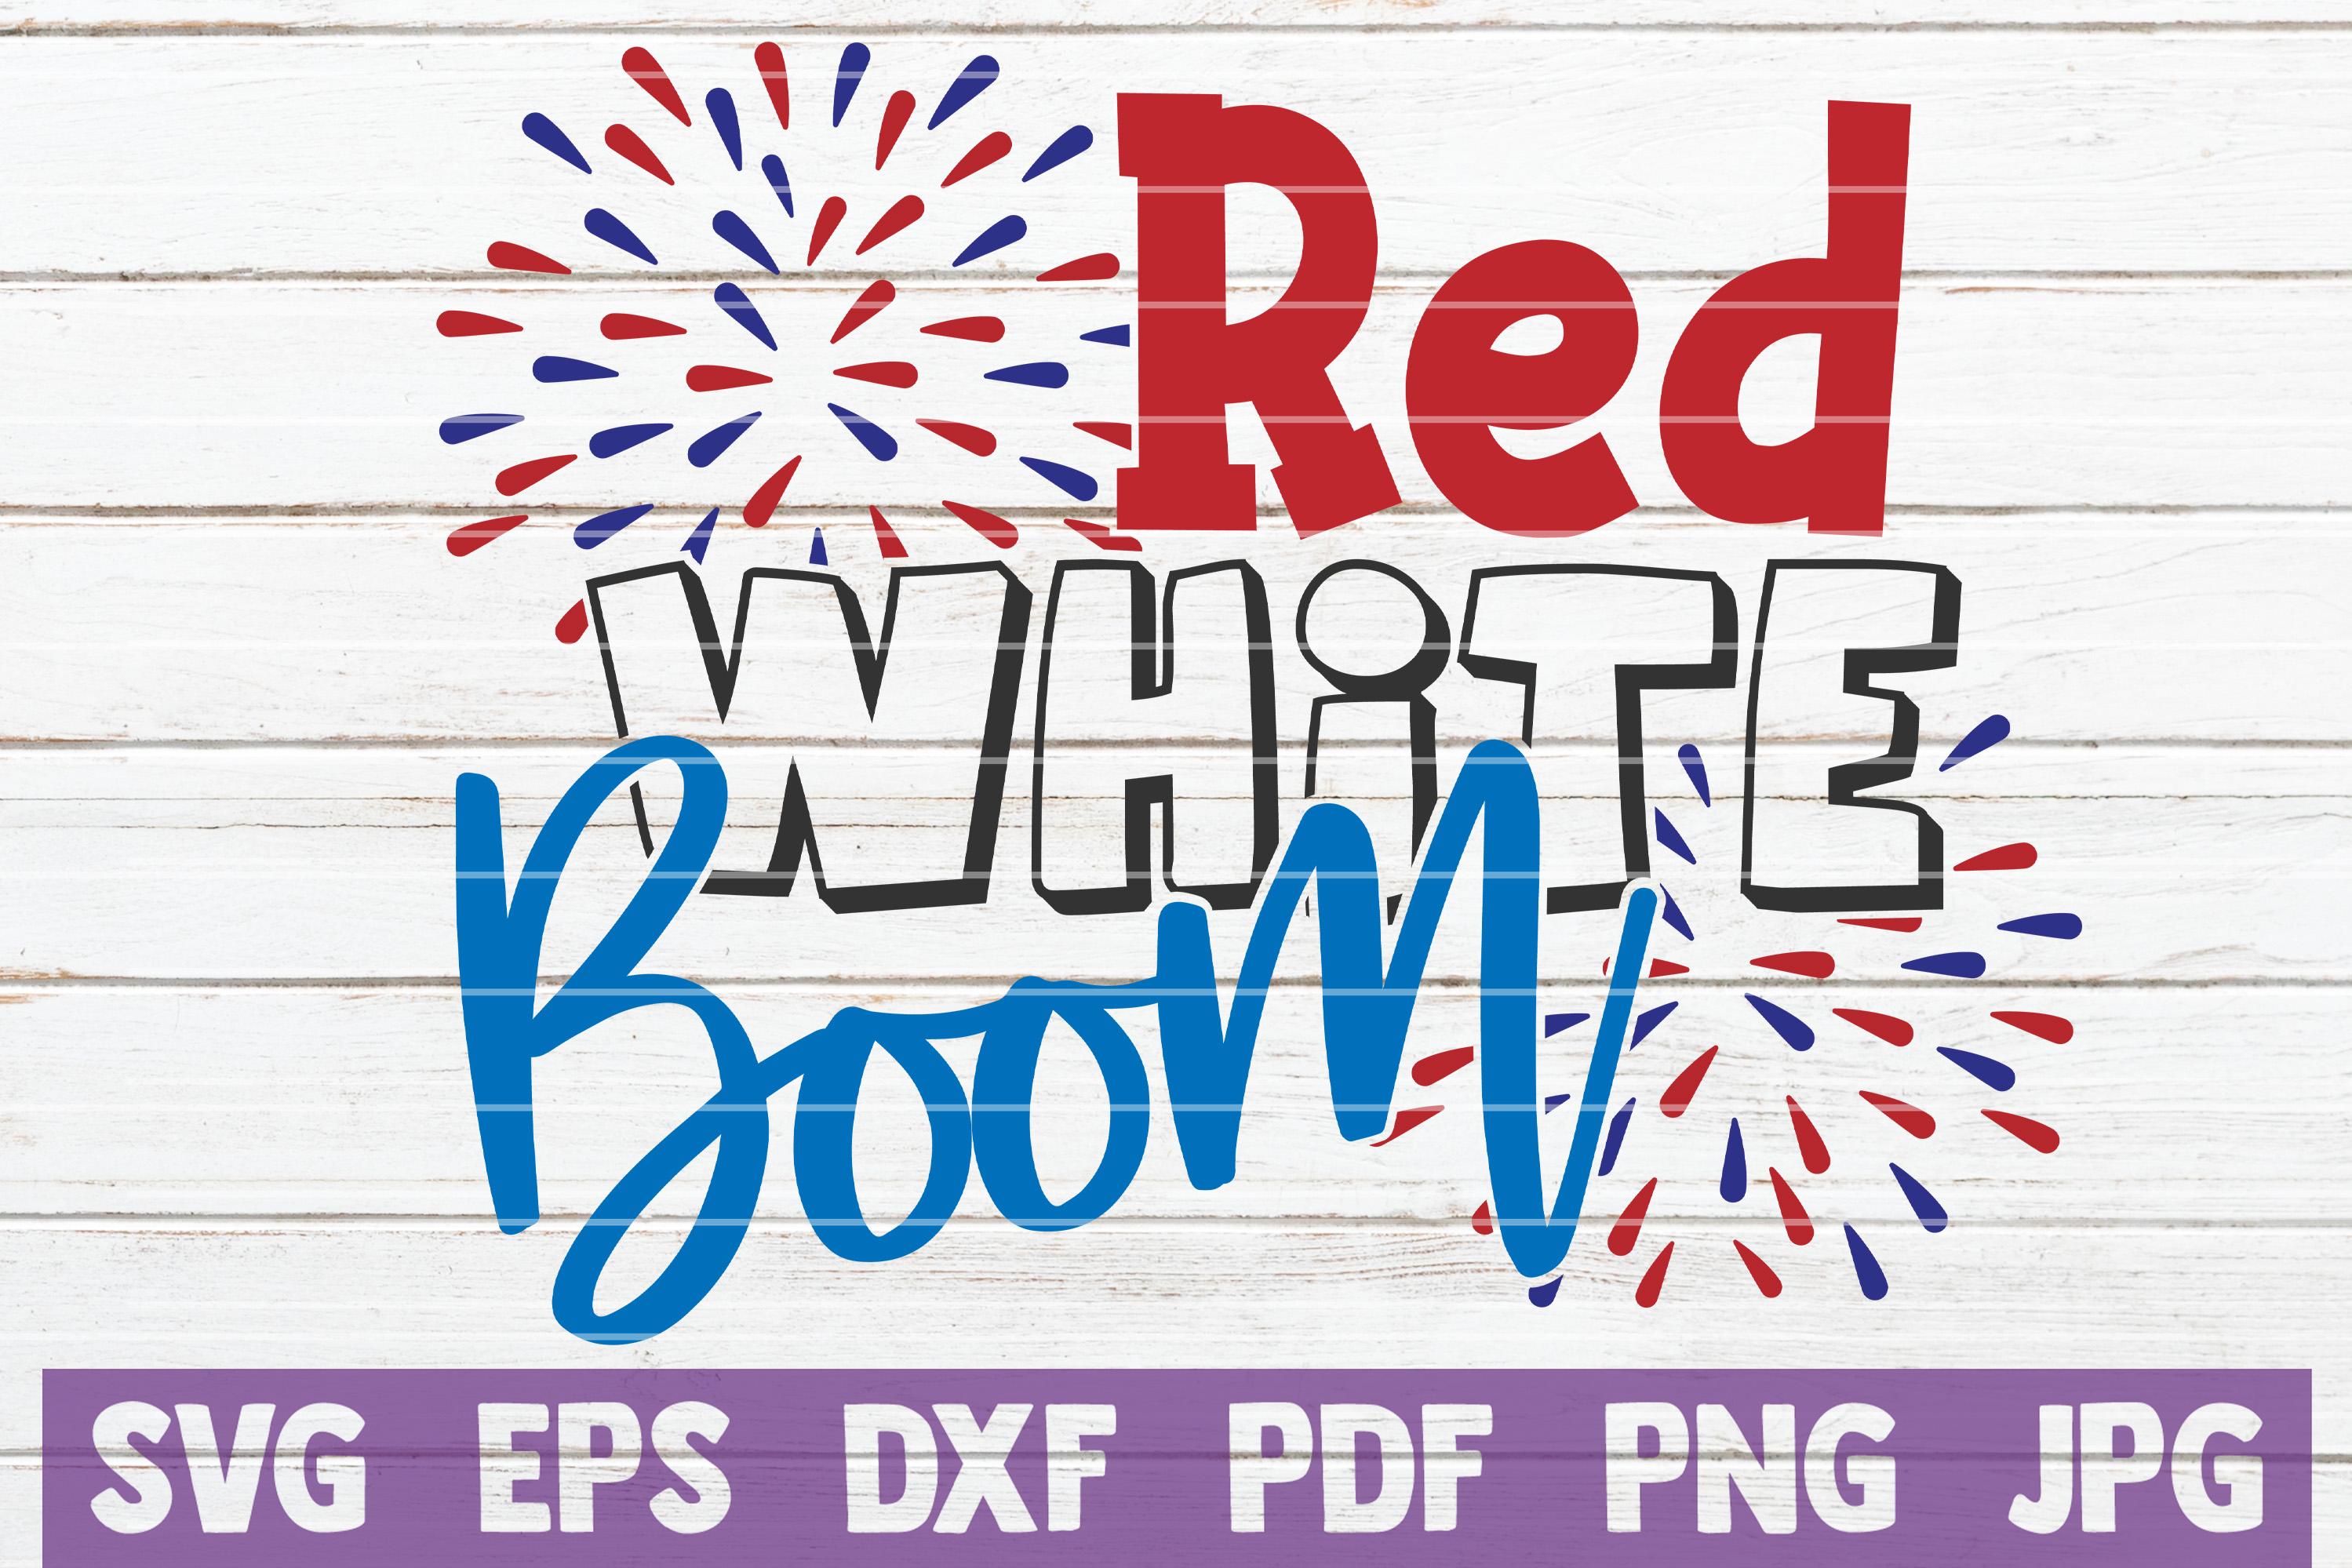 Download Free Red White Boom Svg Cut File Graphic By Mintymarshmallows for Cricut Explore, Silhouette and other cutting machines.